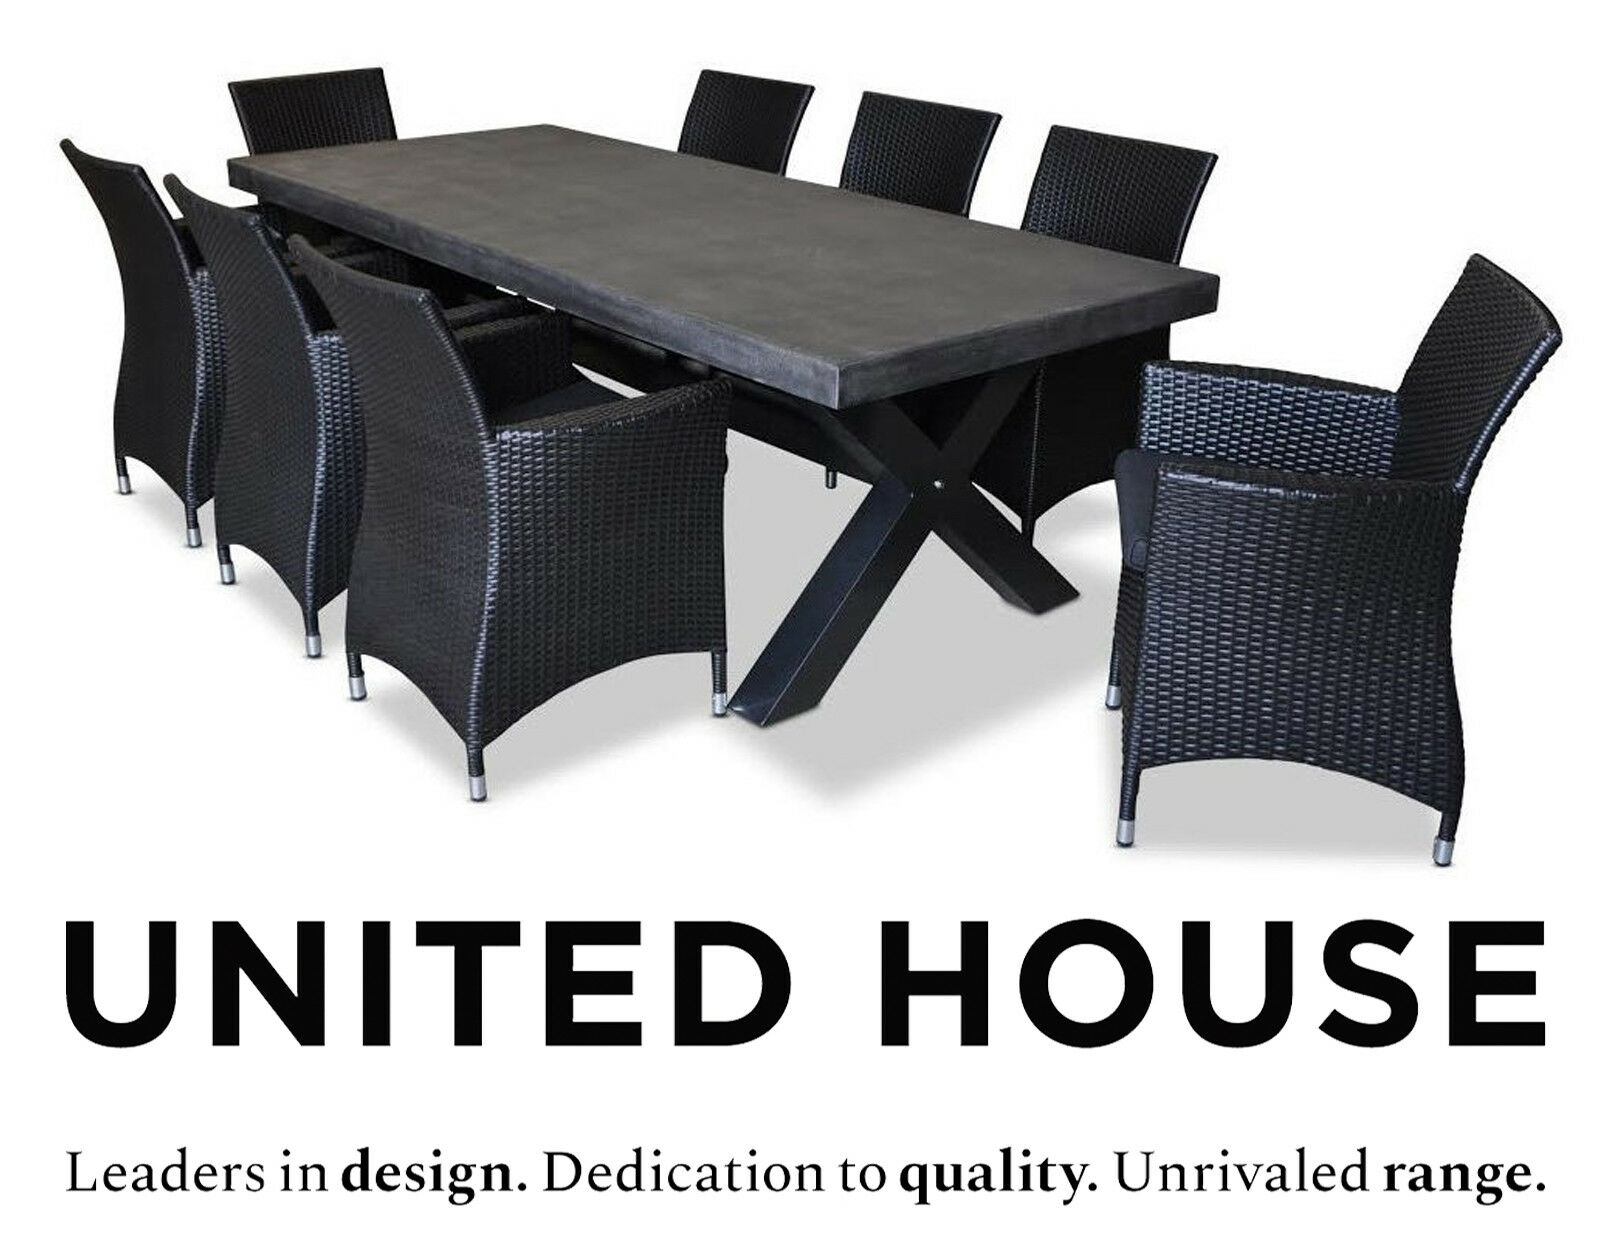 Industrial 8 Seater Poly Cement Dining Table Wicker Chairs Outdoor Furniture Set Ebay